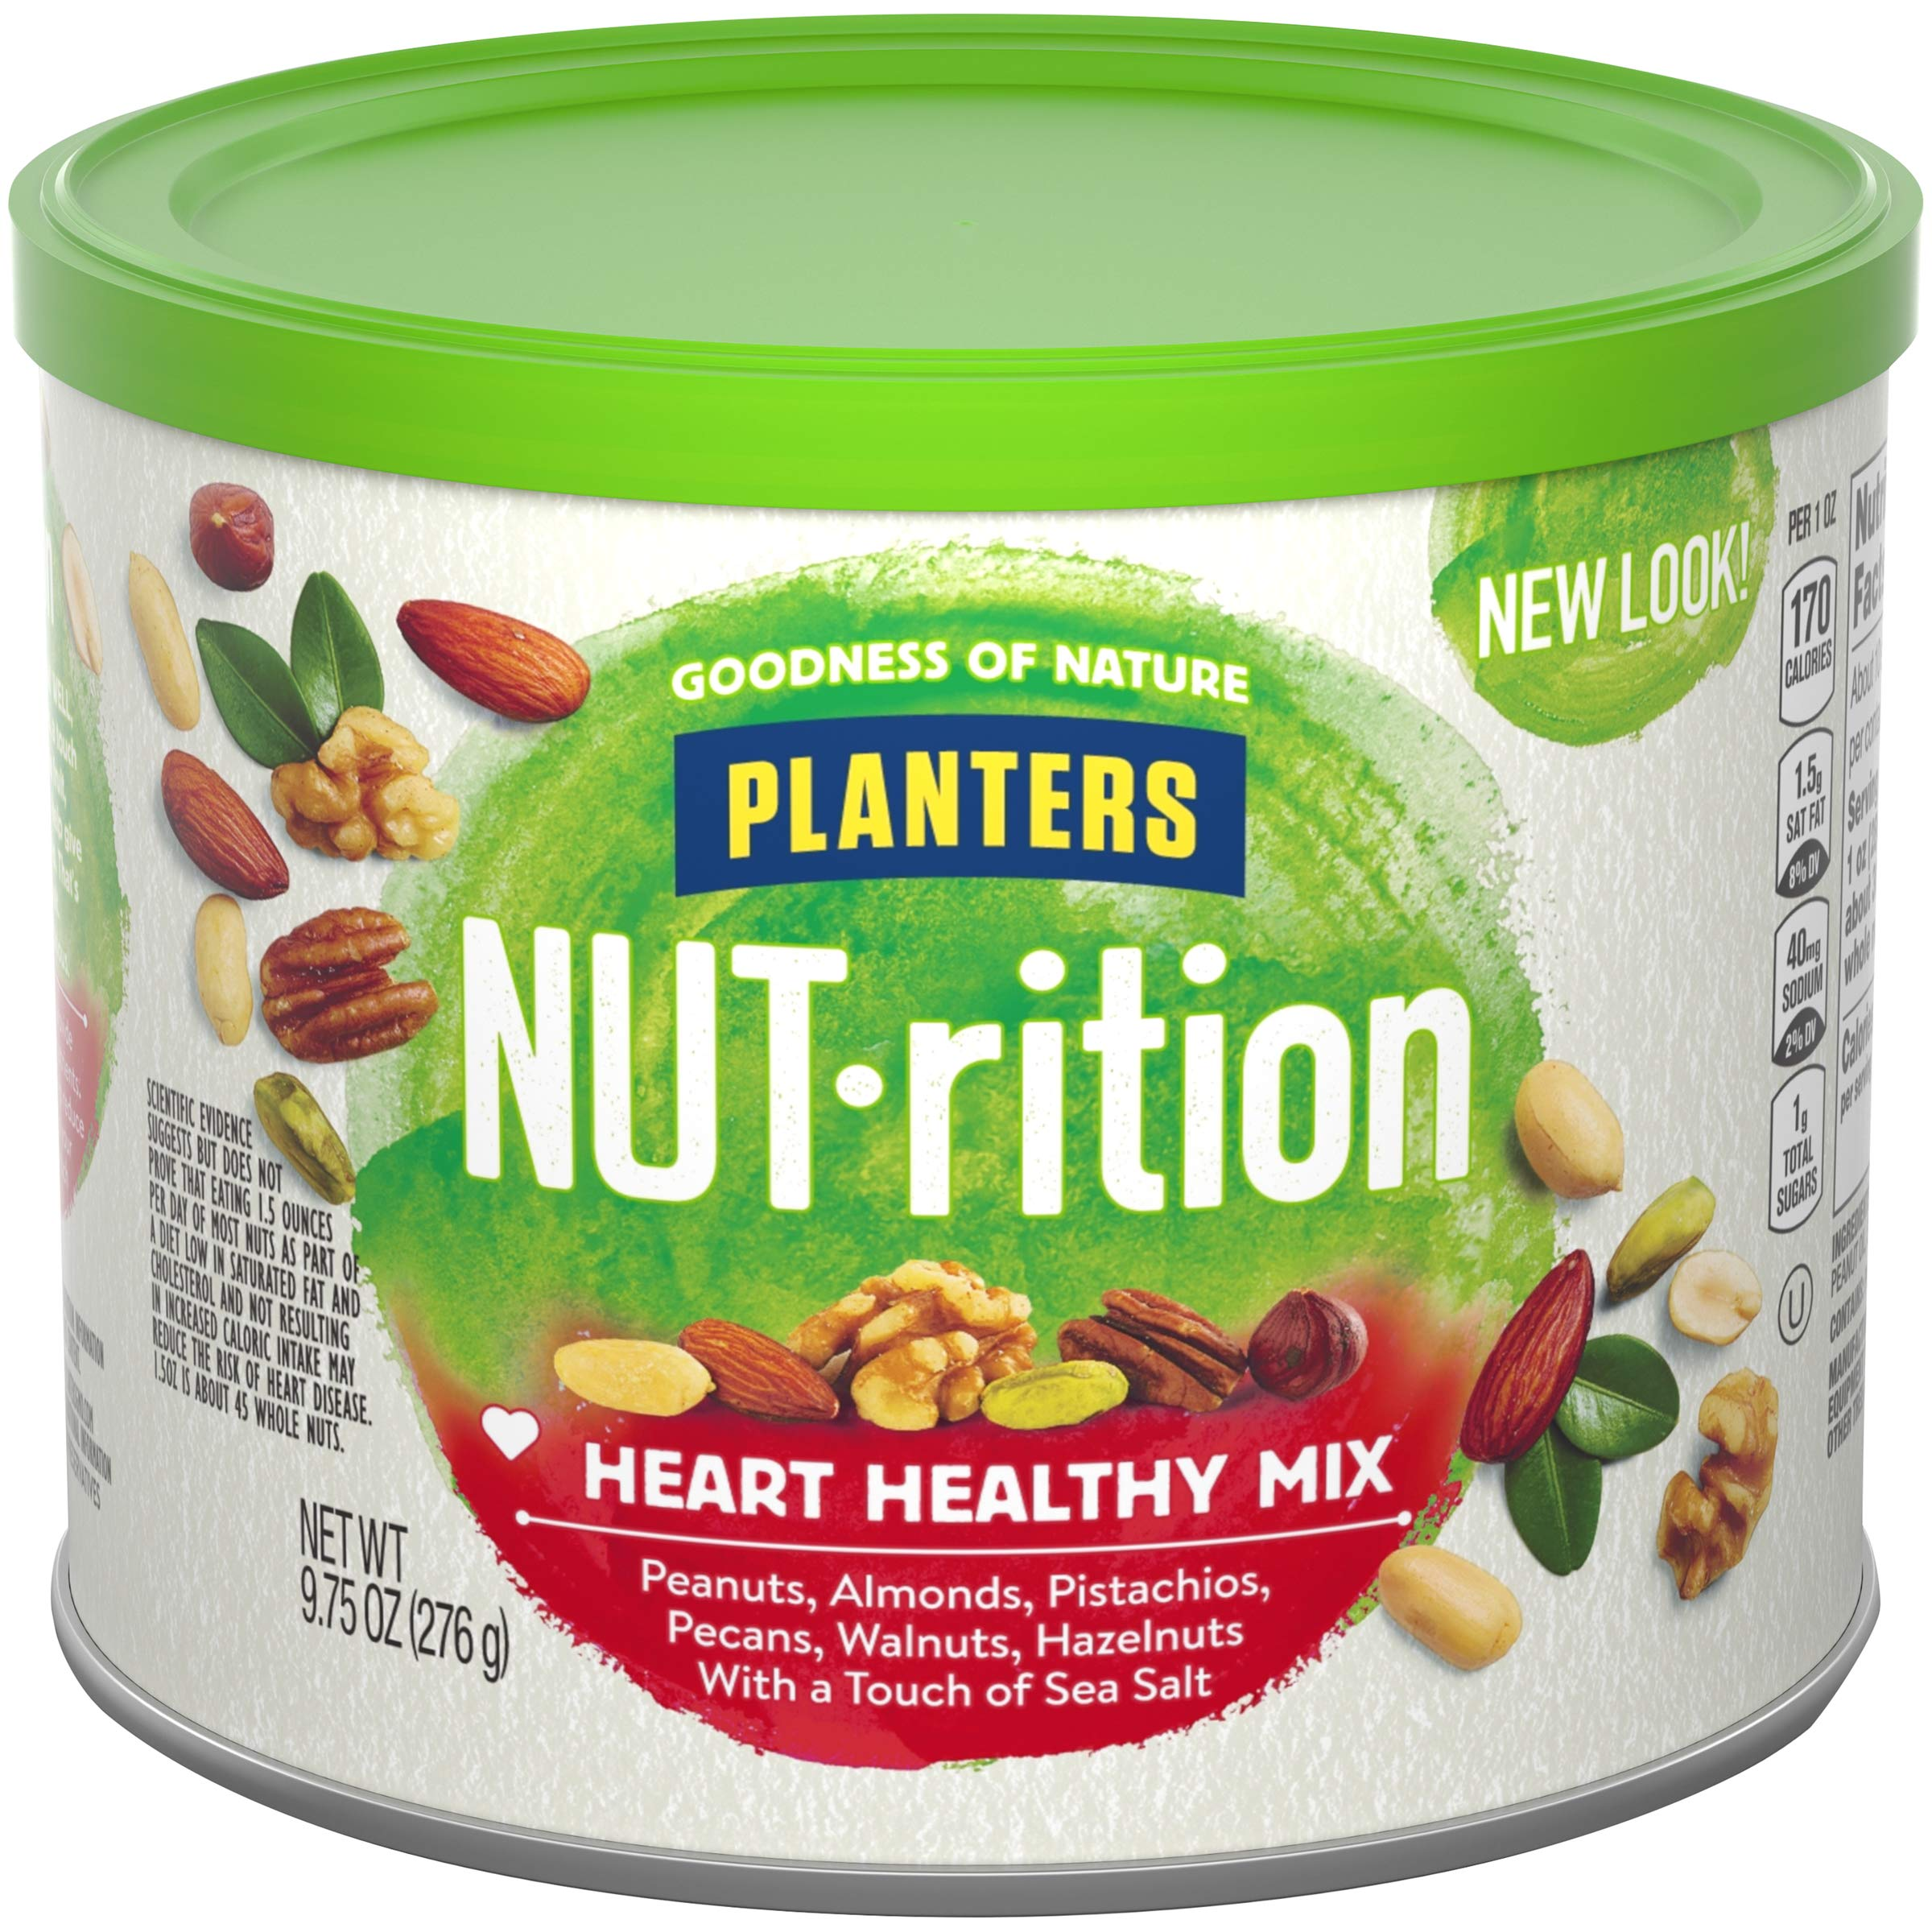 NUTrition Heart Healthy Snack Nut Mix (9.75oz, Pack of 3) by Planters (Image #1)